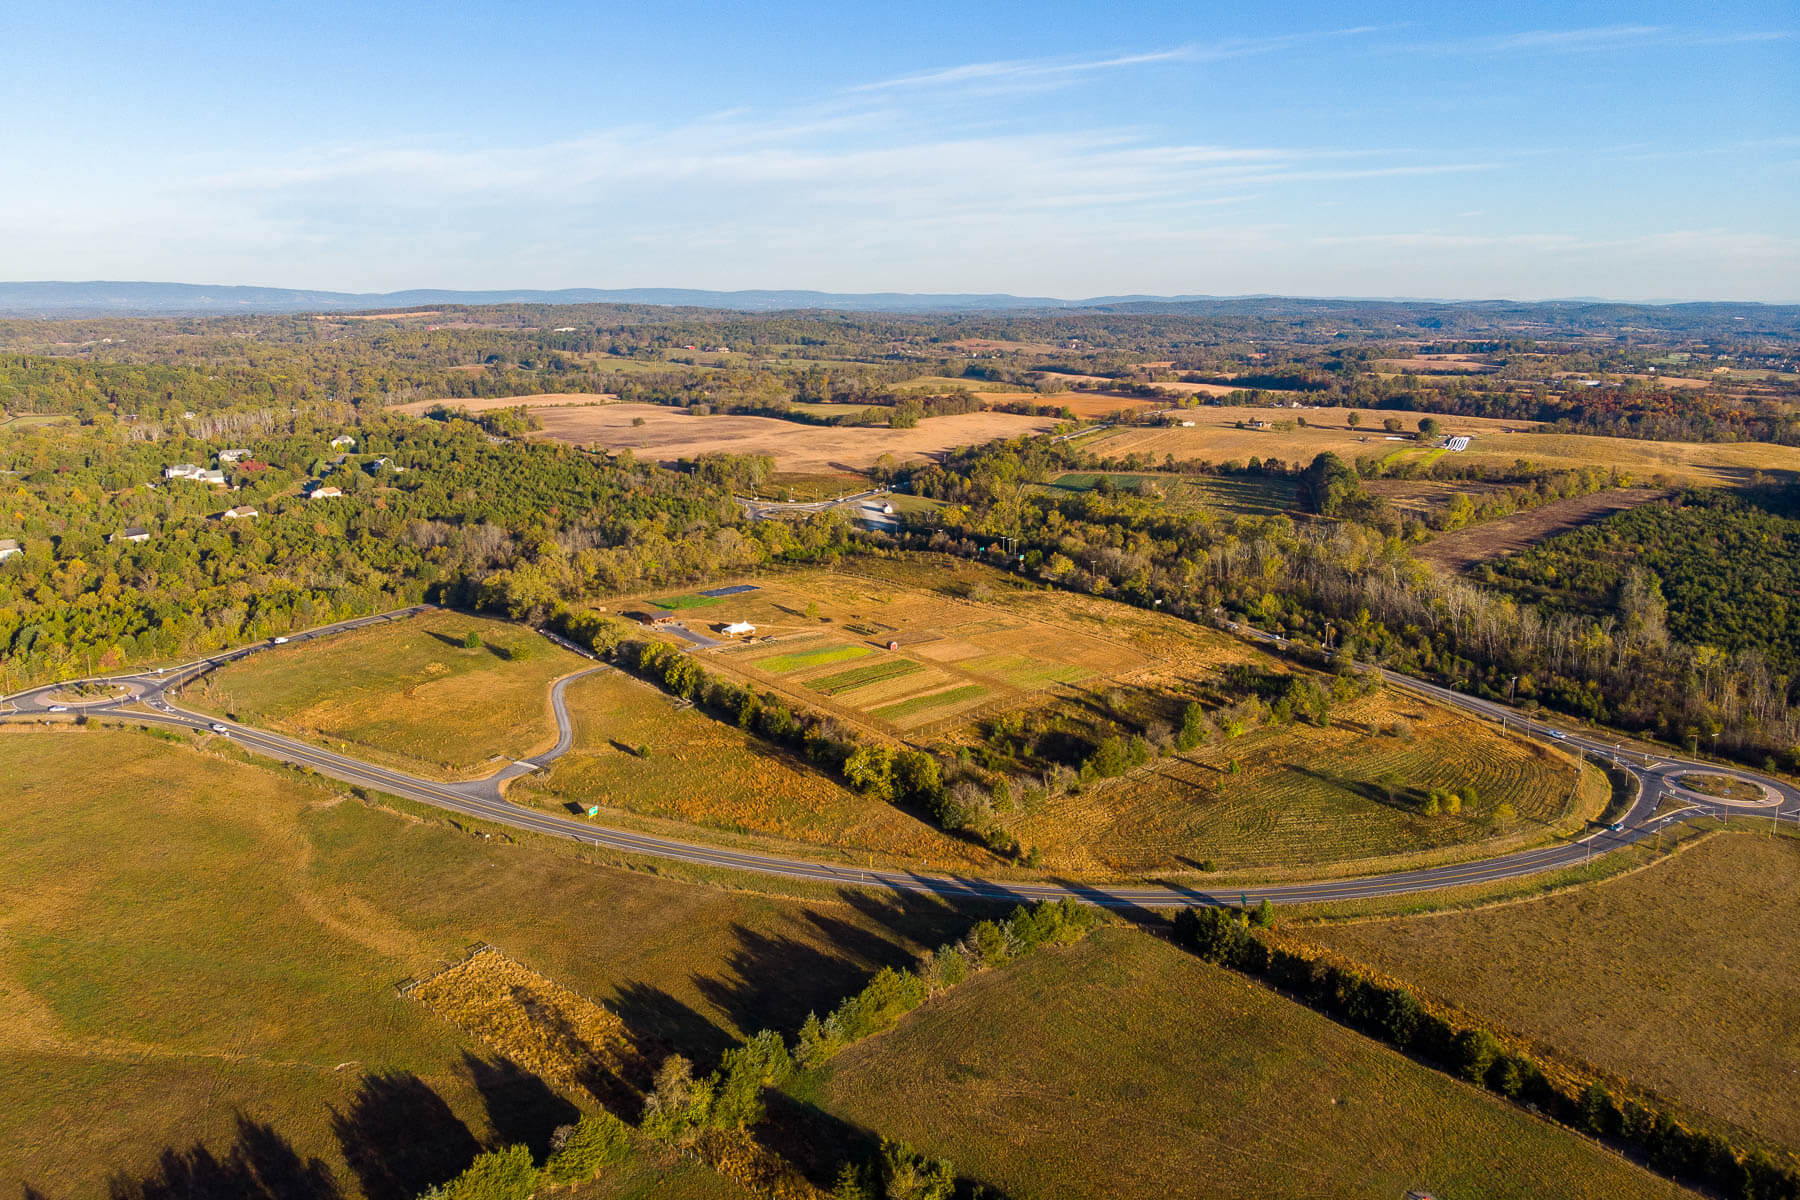 aerial photo of Roundabout Meadows shows where Route 50 and 15 meet.